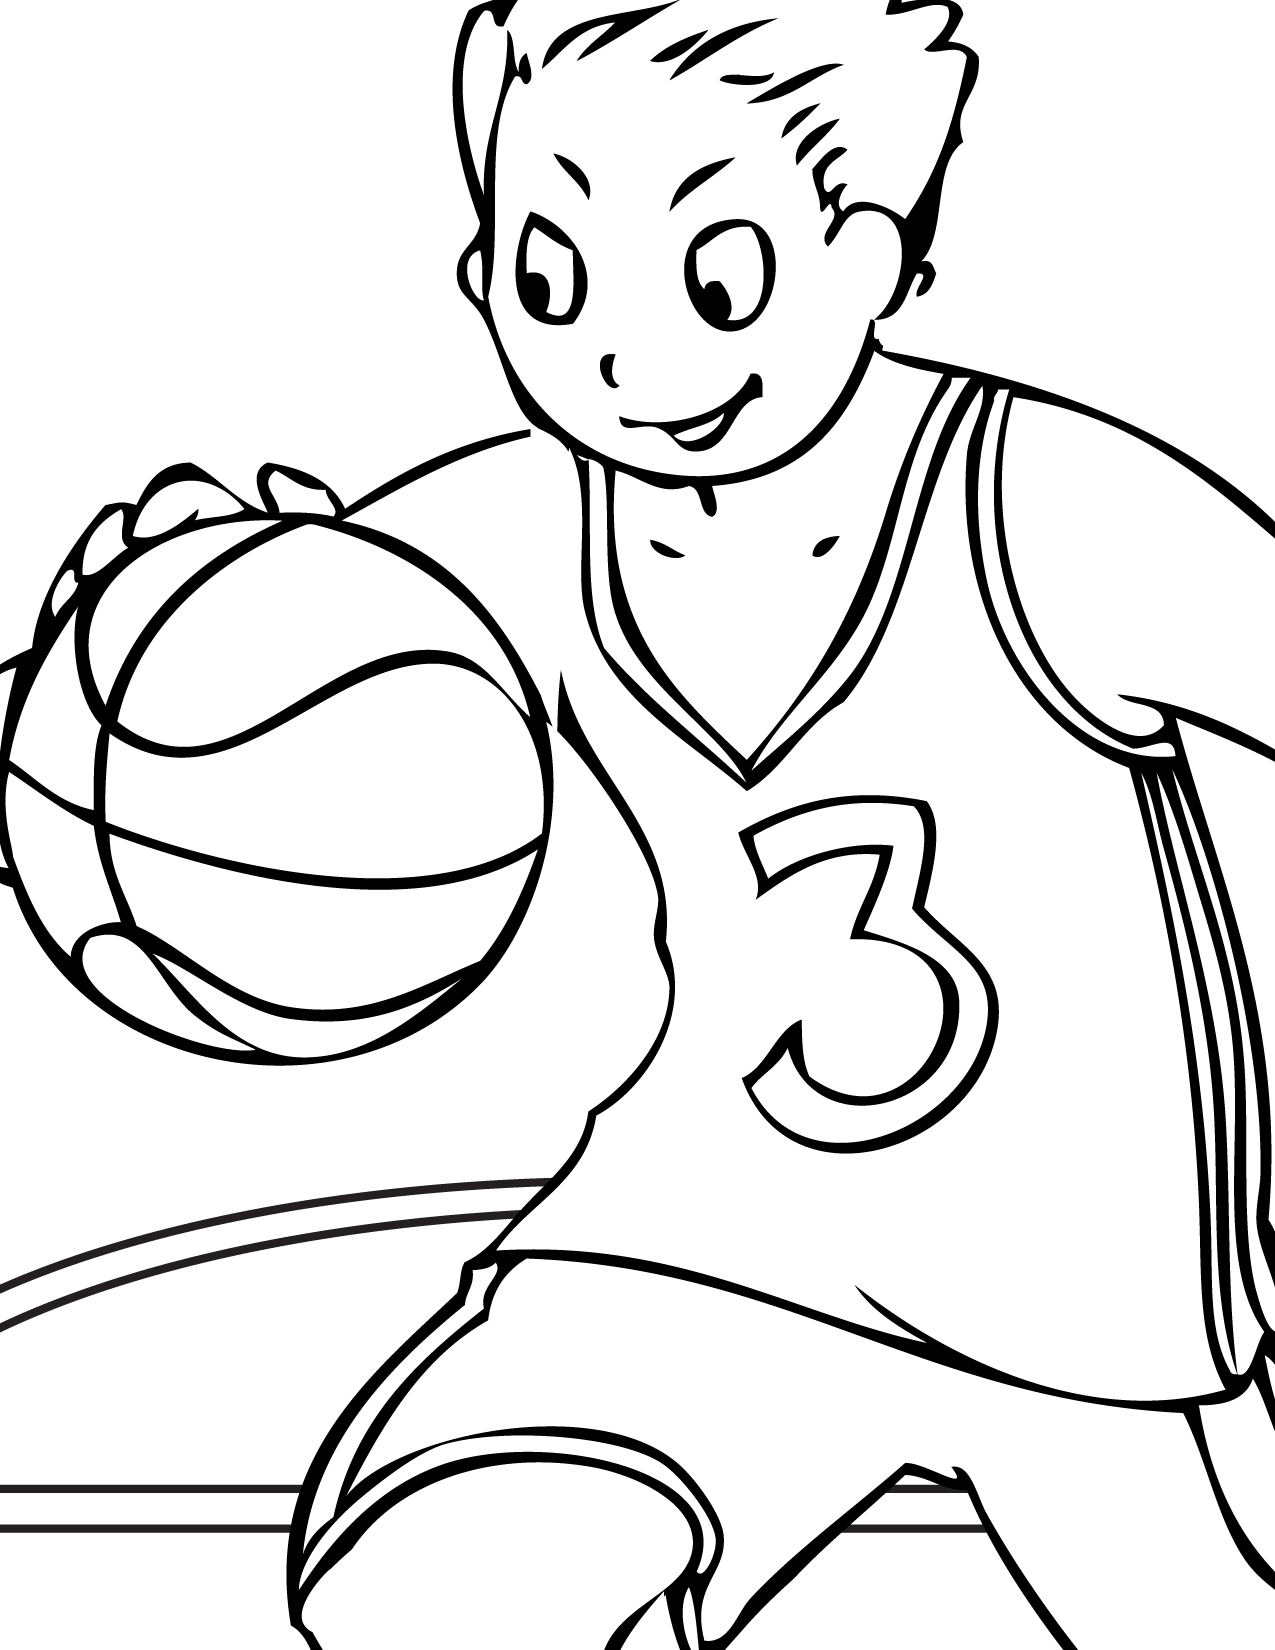 a coloring pages - photo#42